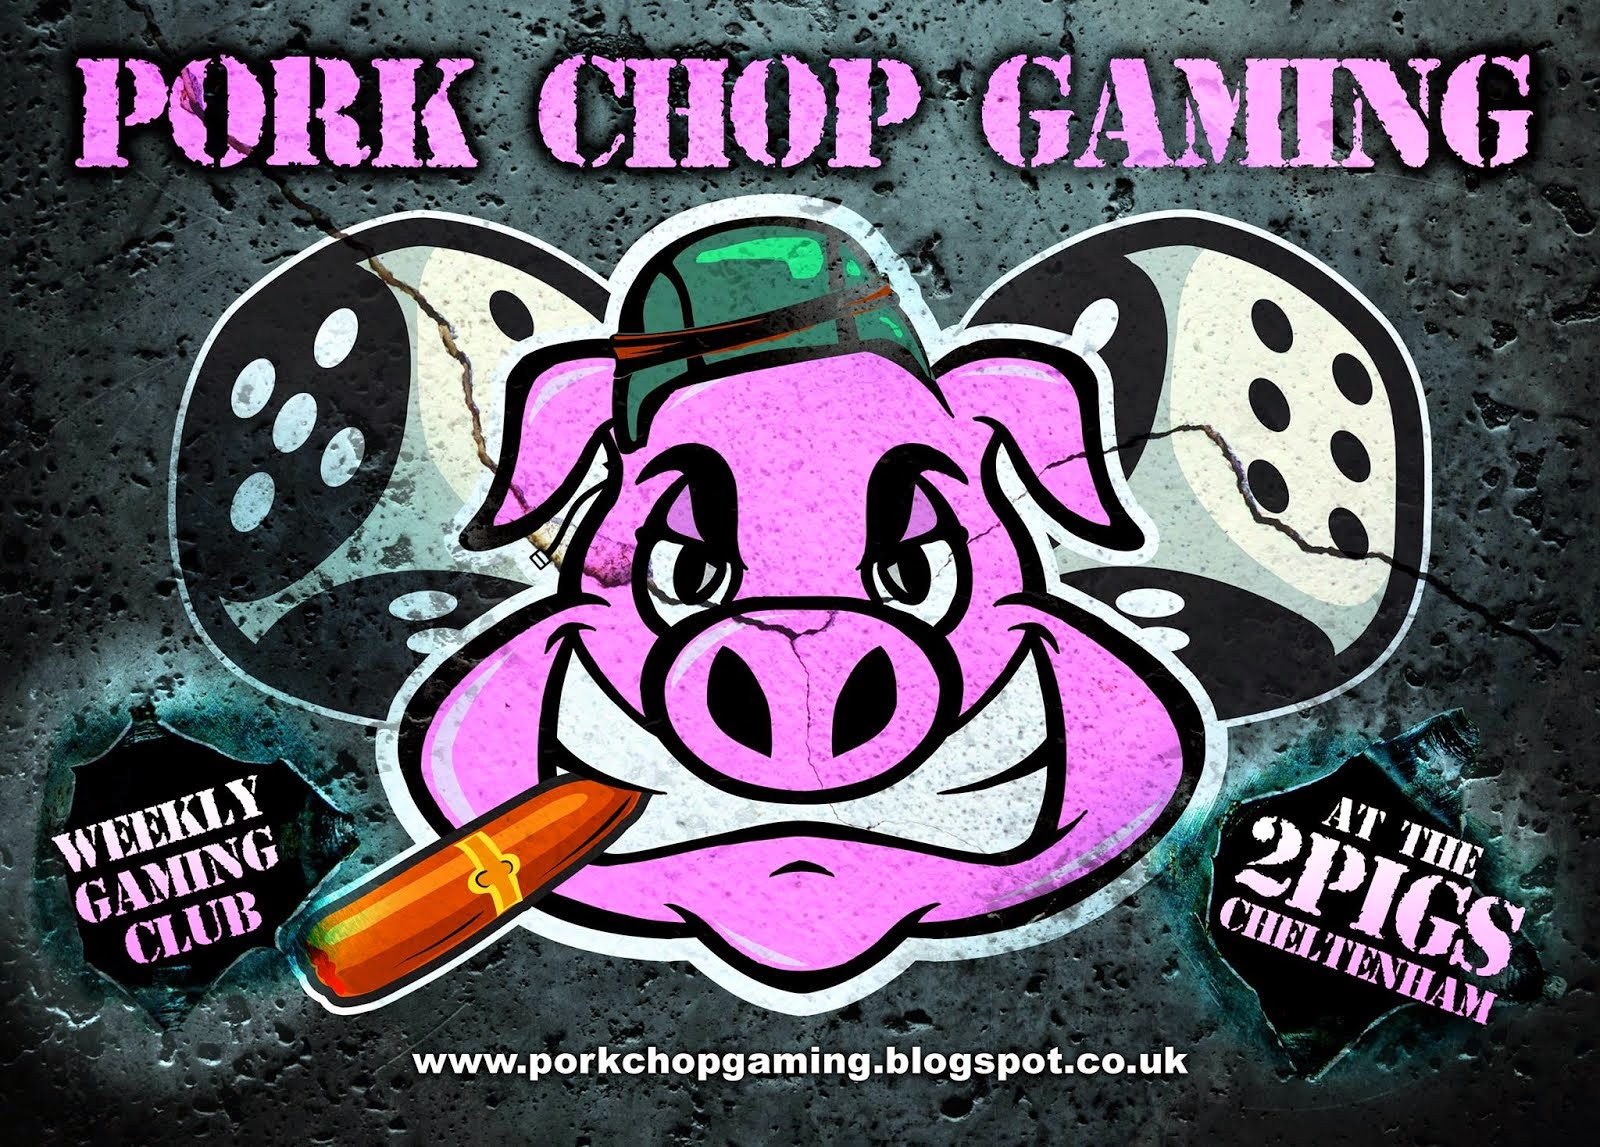 Pork Chop Gaming Club (Cheltenham, UK)